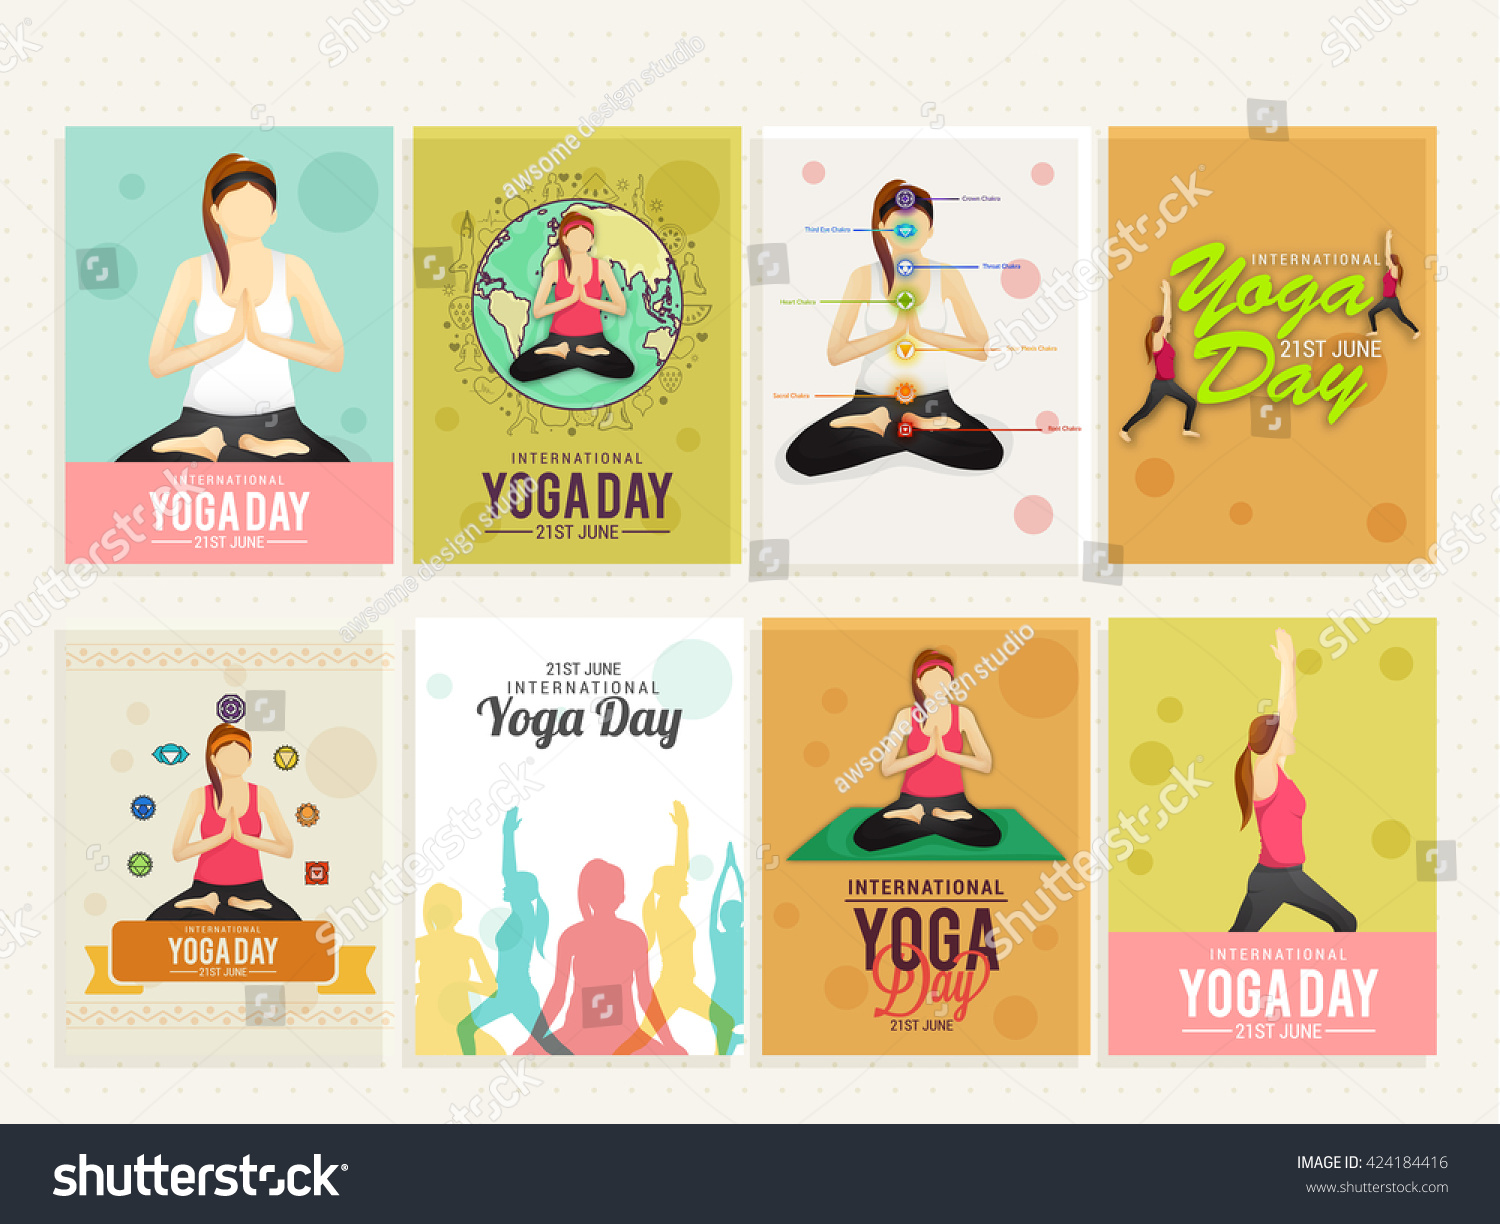 Poster design yoga - A Beautiful Card Or Poster Set Of International Yoga Day